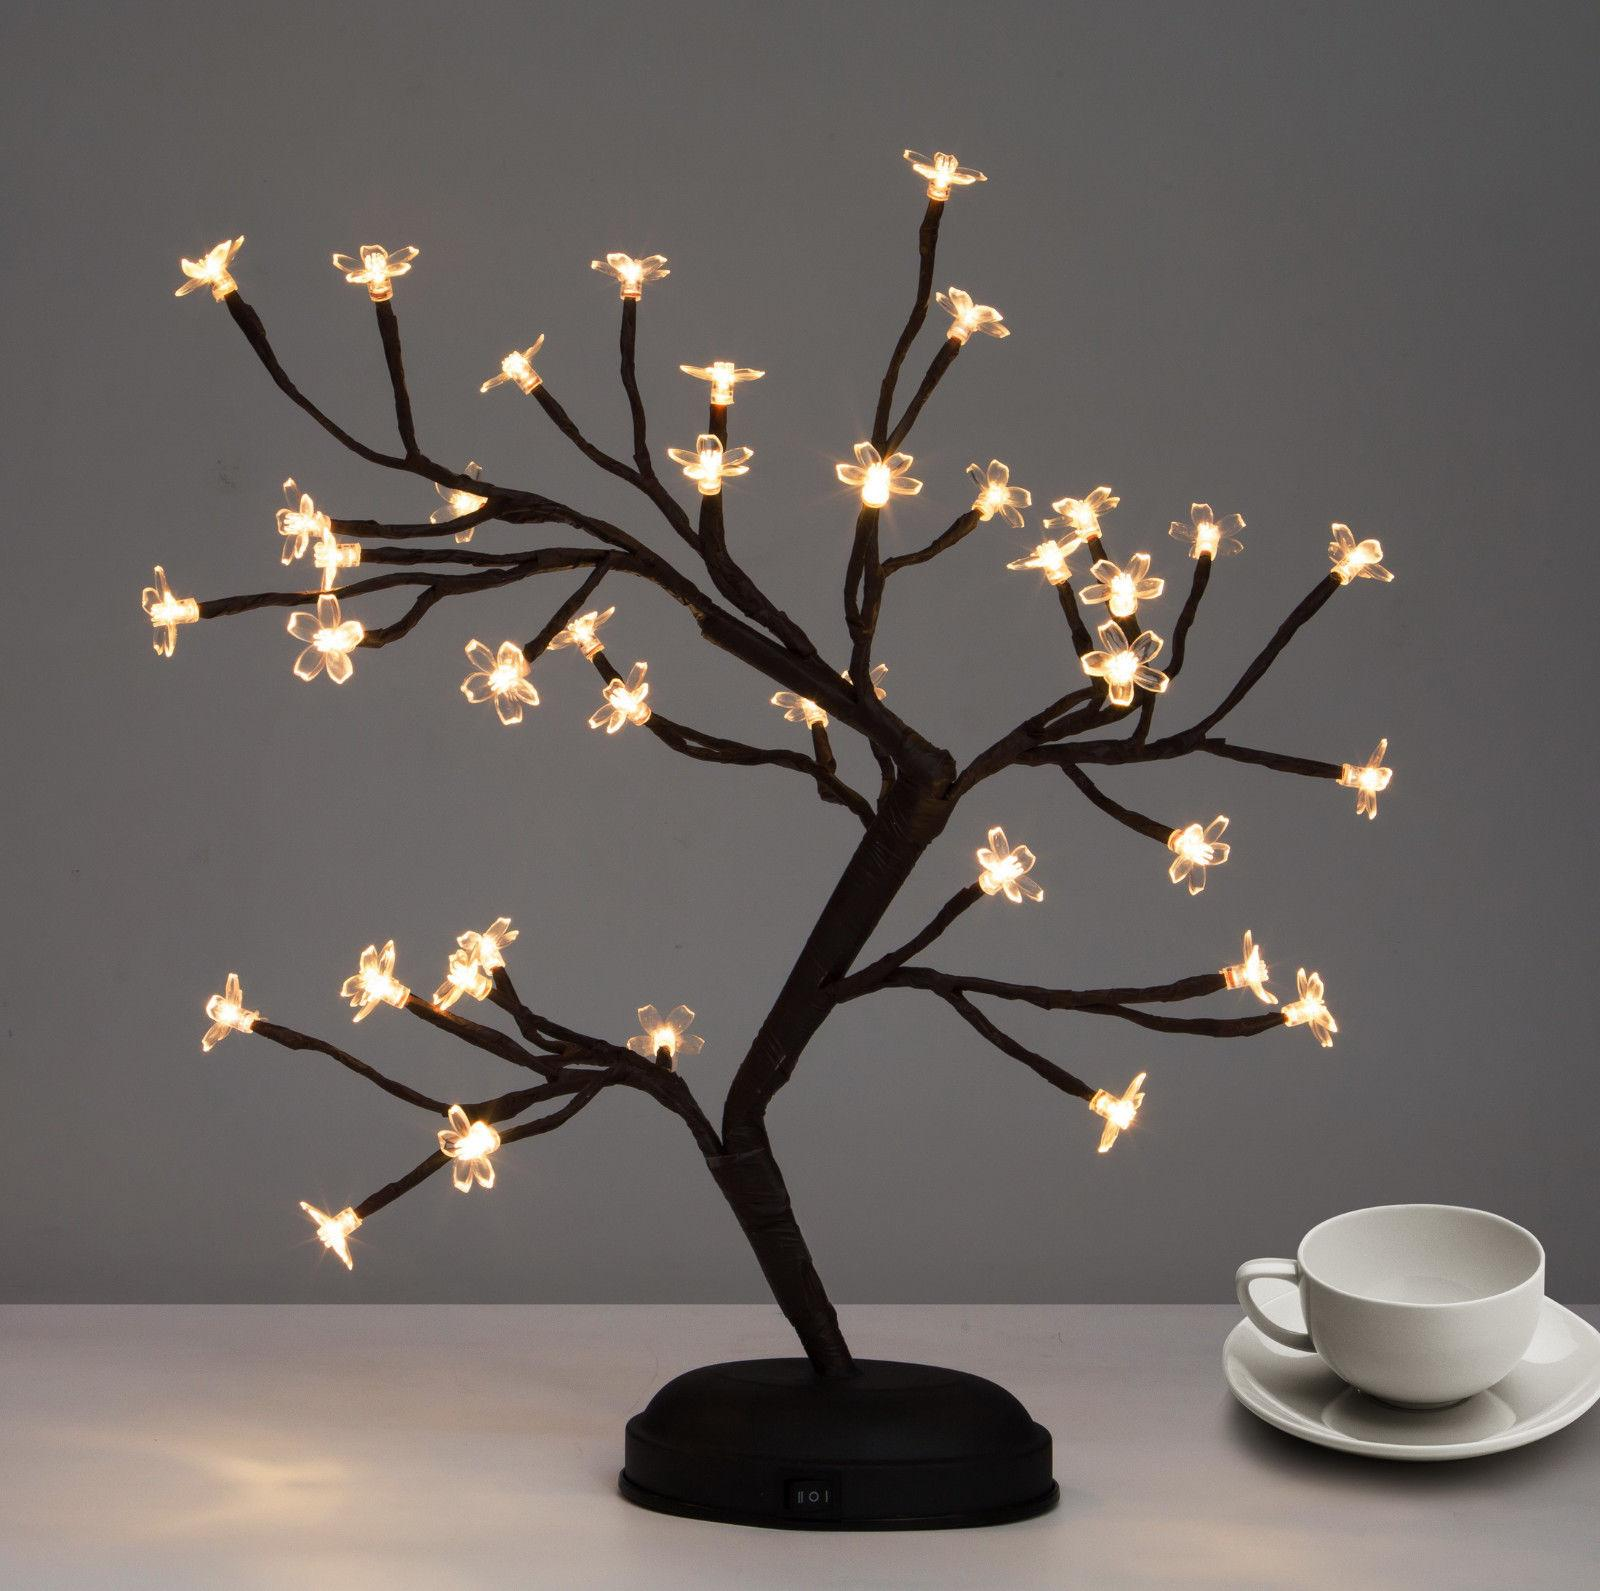 LED Cherry Blossom Desk Bonsai Table Lamp Tree Light  Fairy